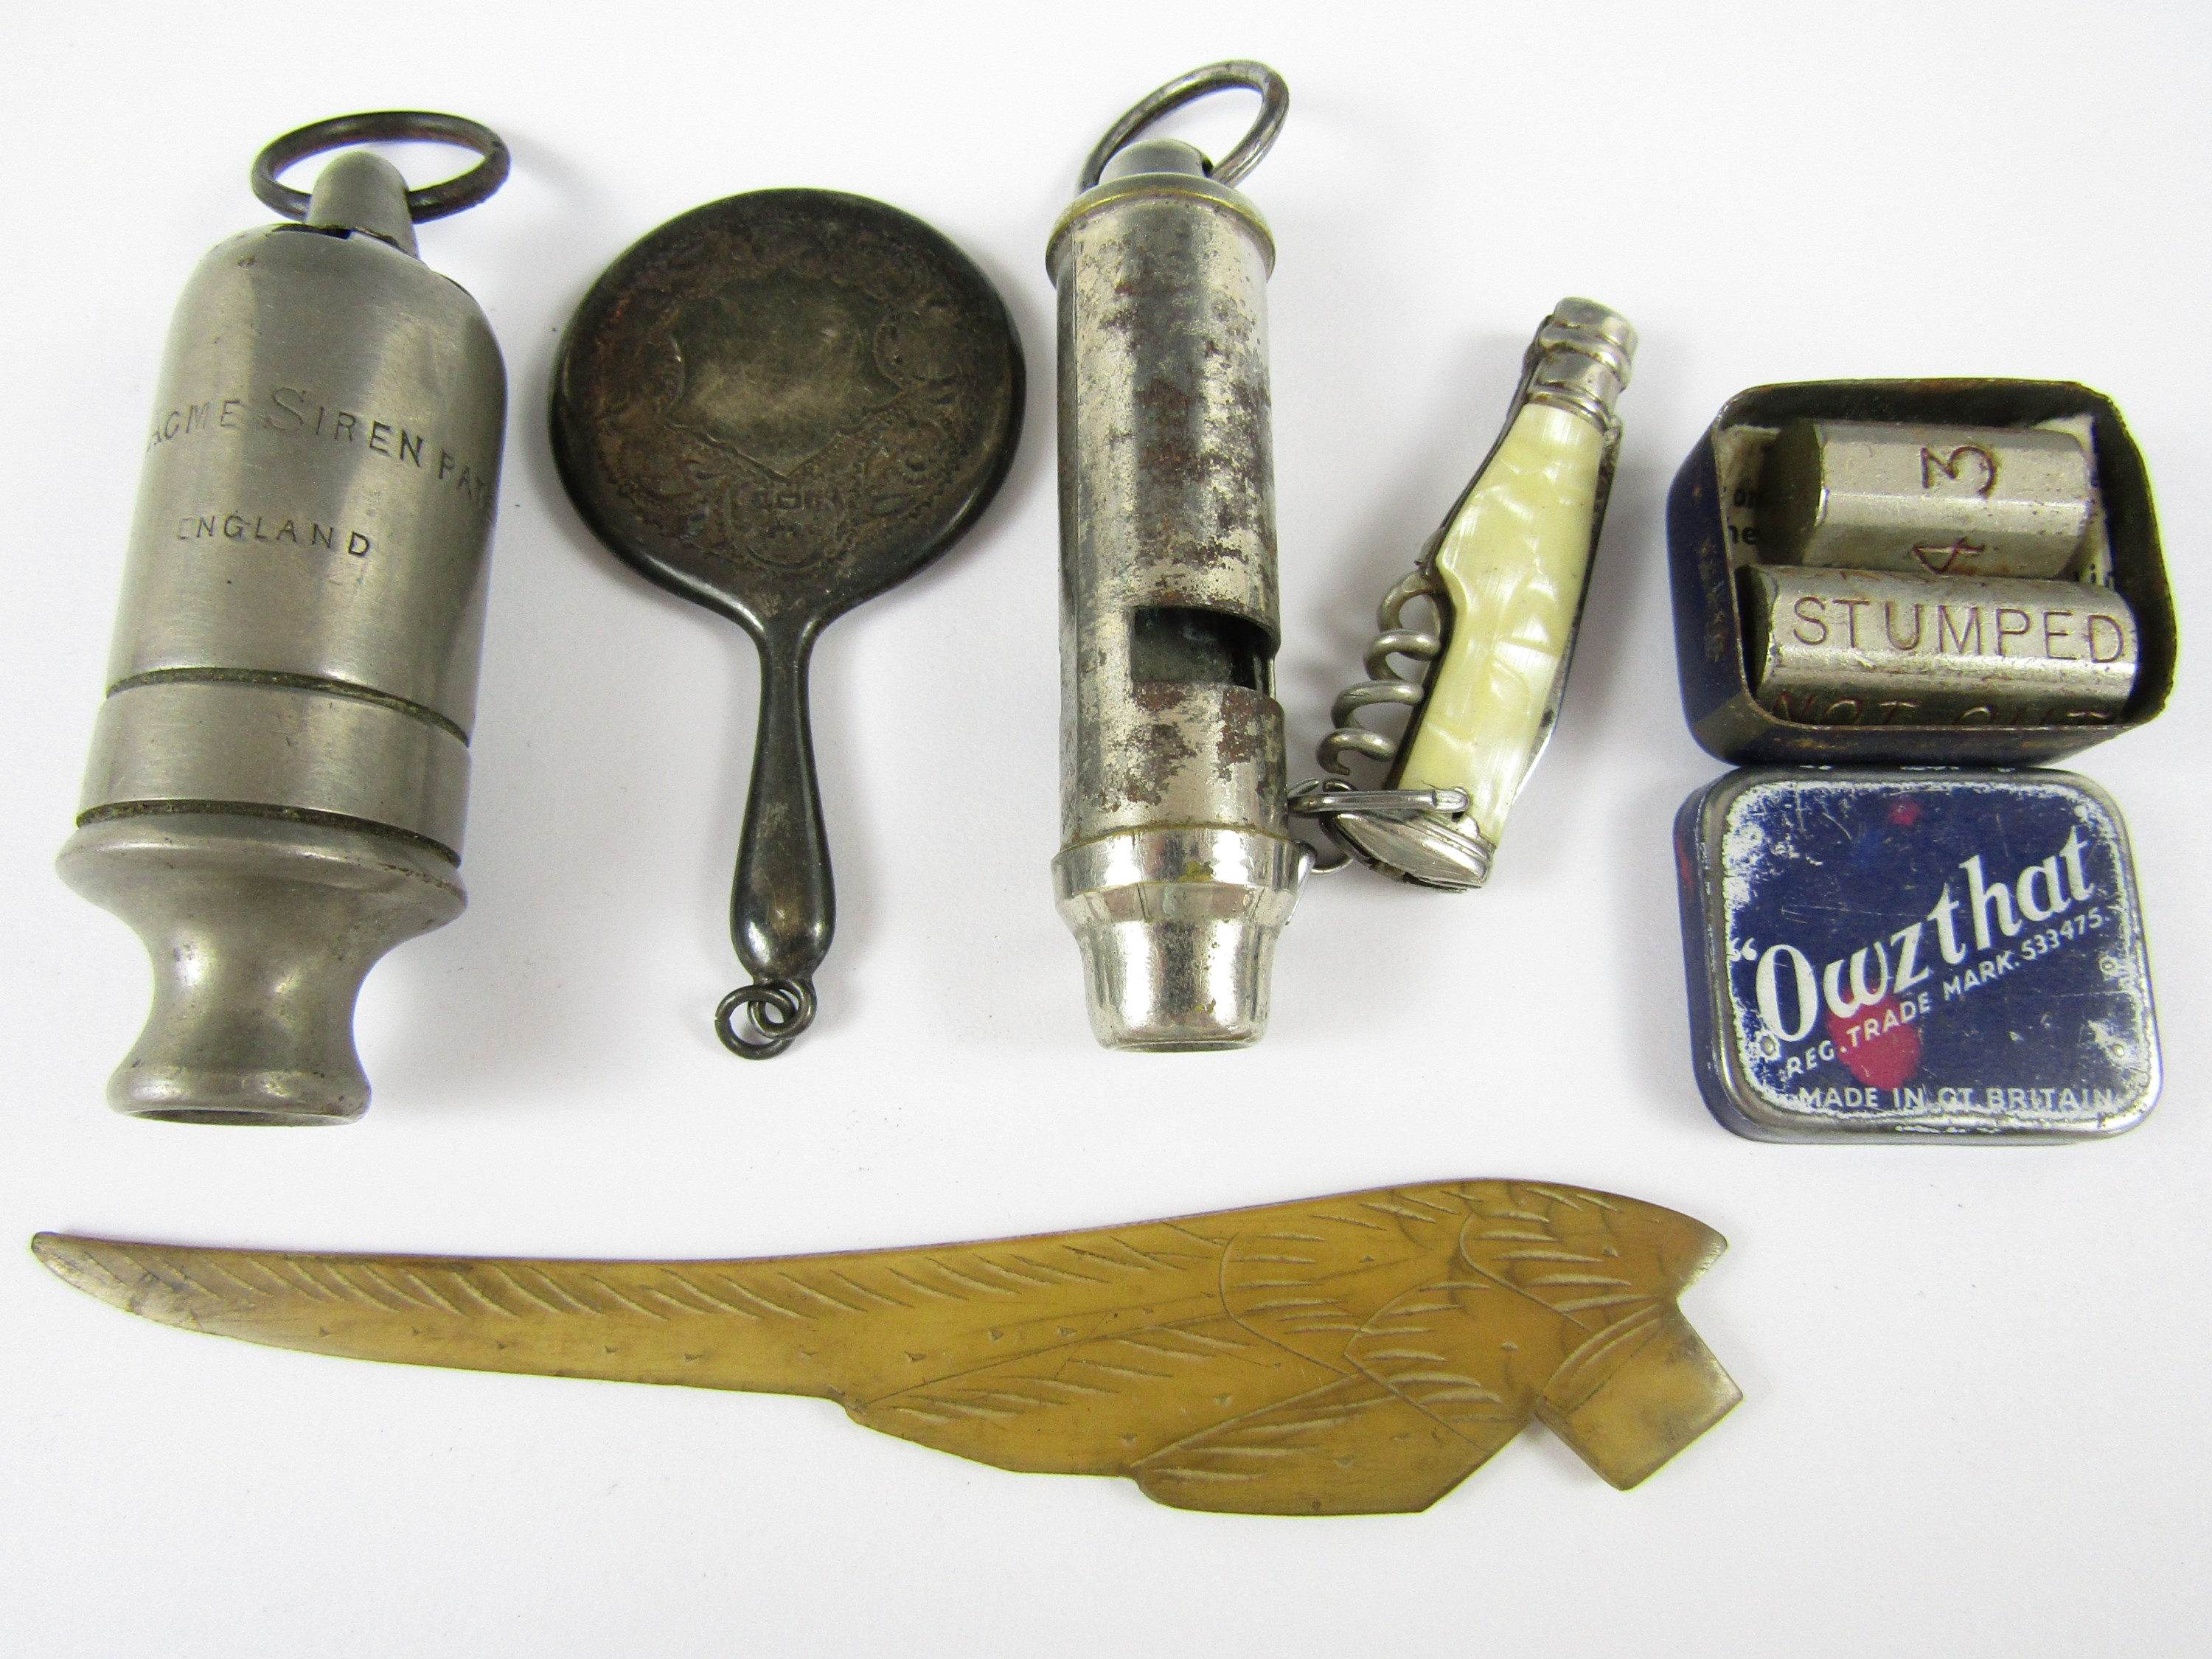 Lot 33 - Sundry collectors' items including The Acme Siren patent whistle, one other whistle, a novelty